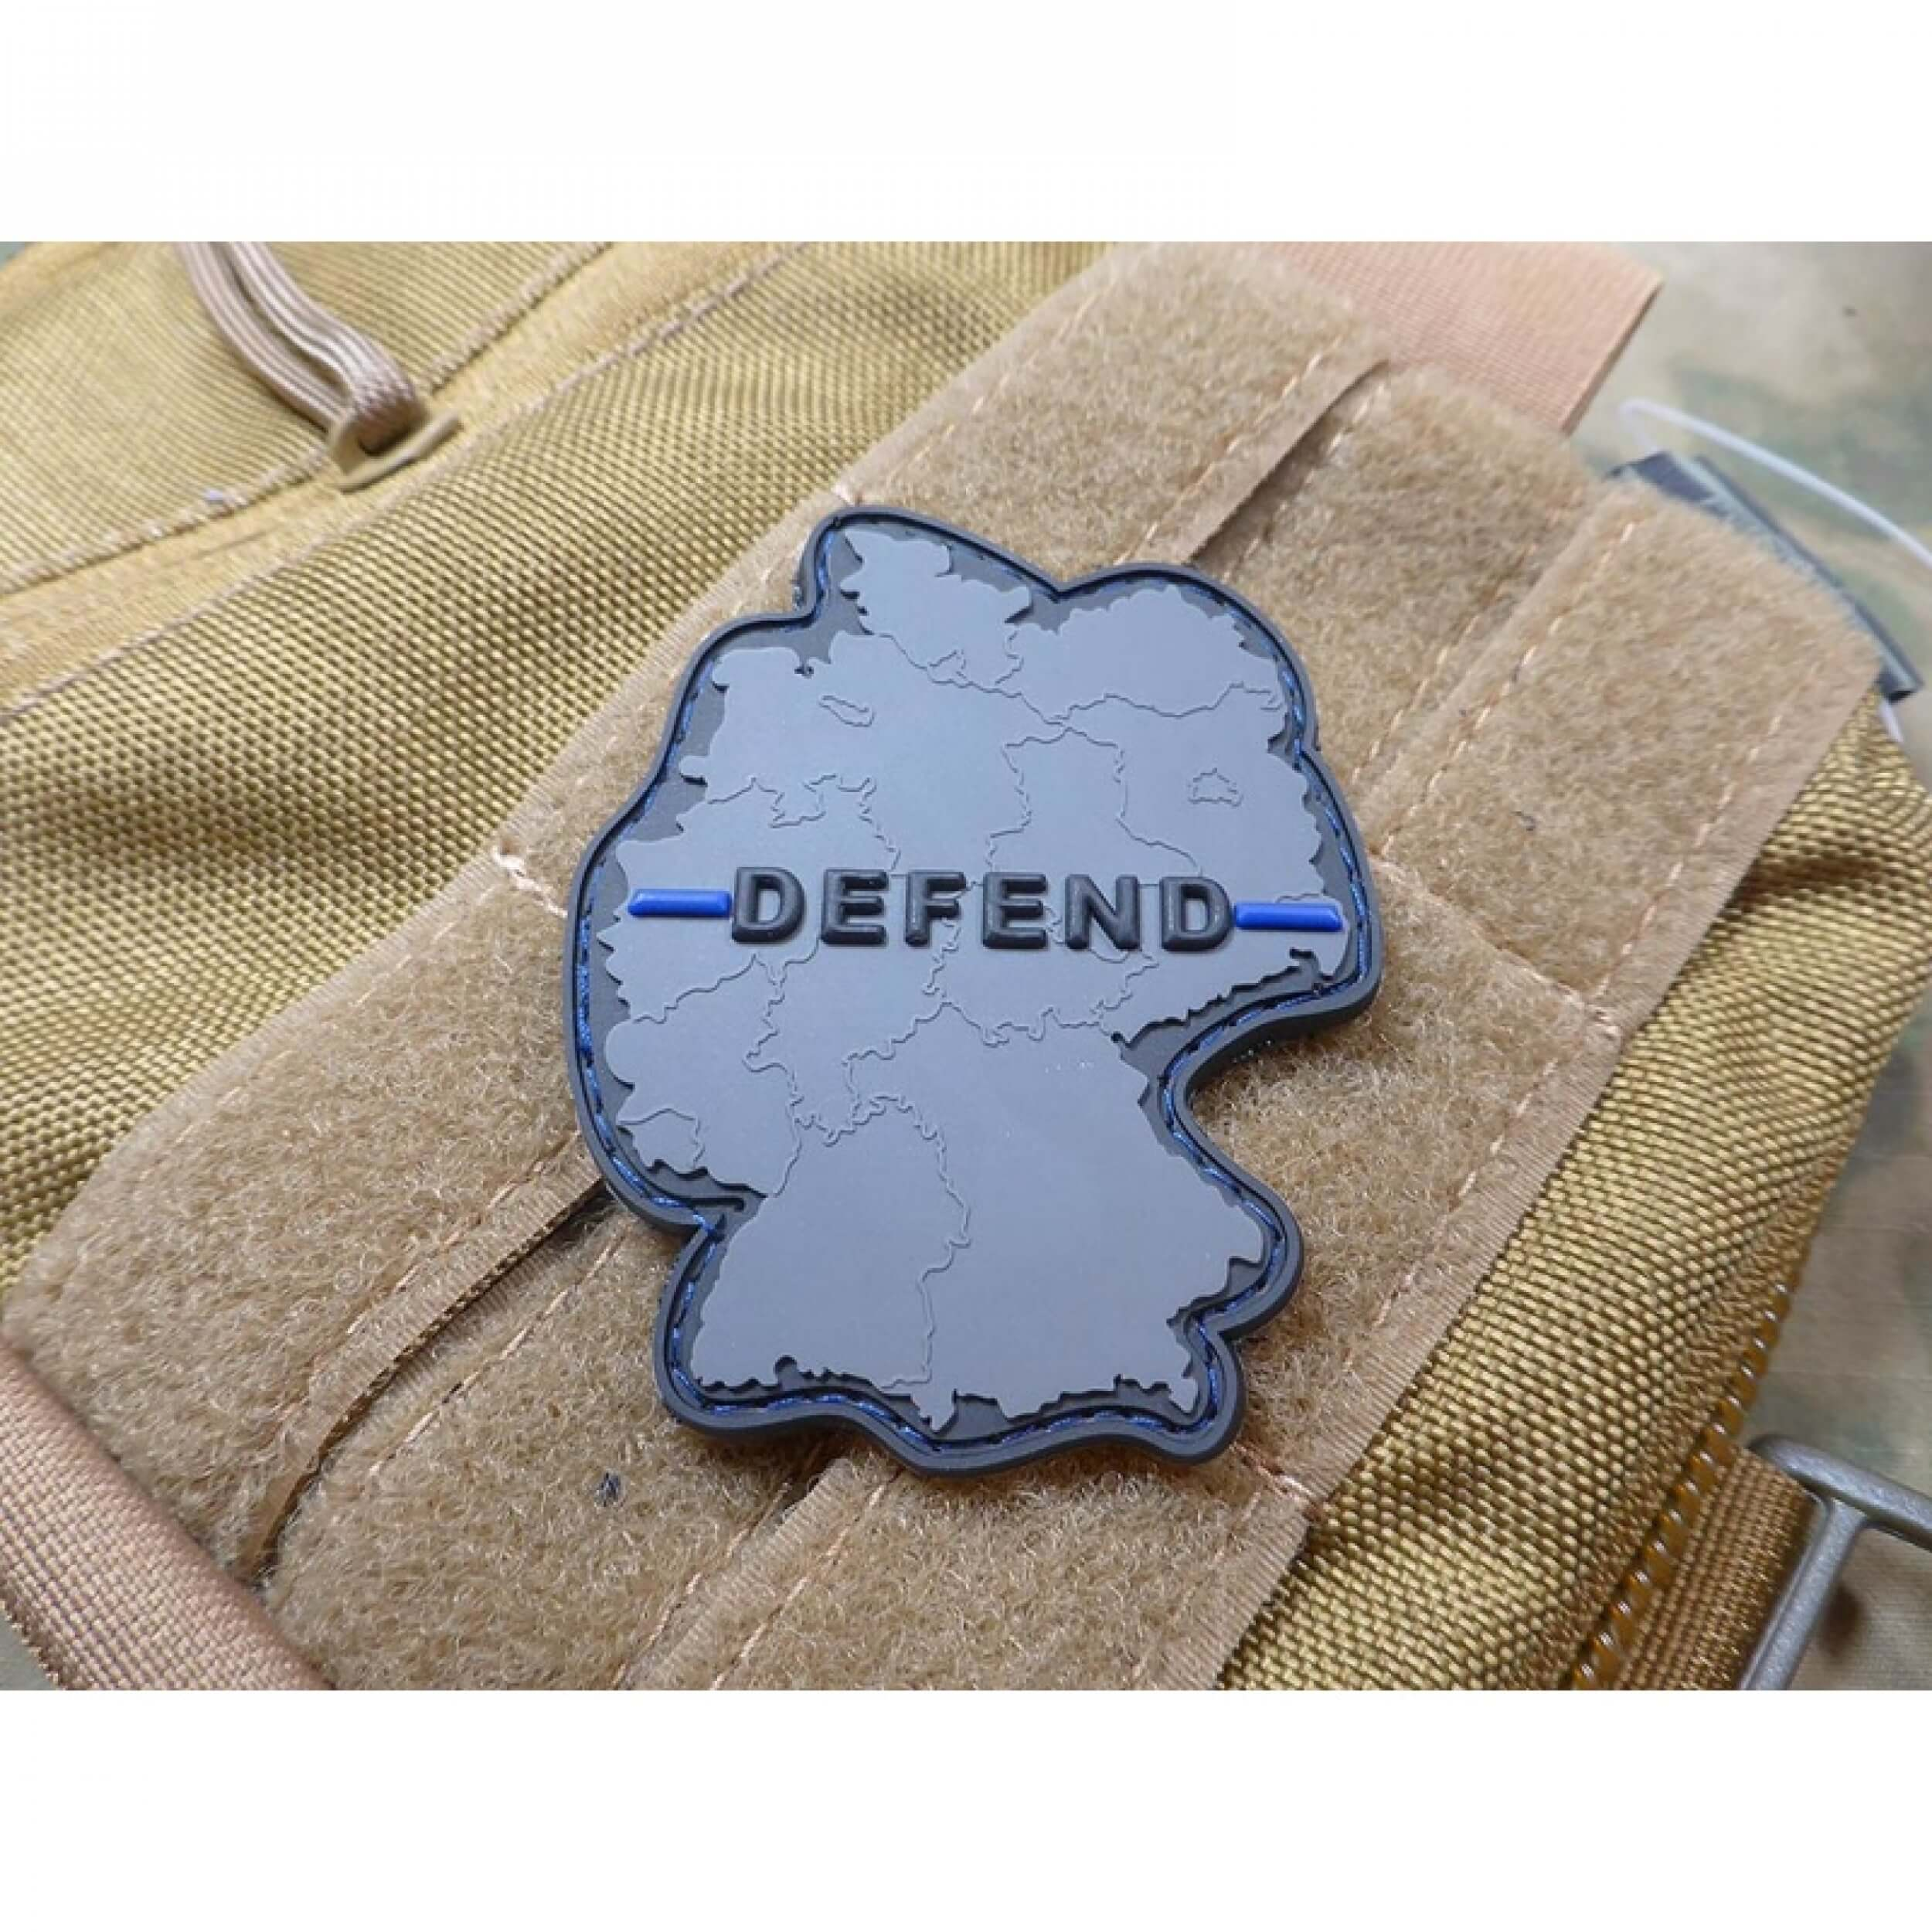 JTG Defend Patch, Thin Blue Line, Special Edition